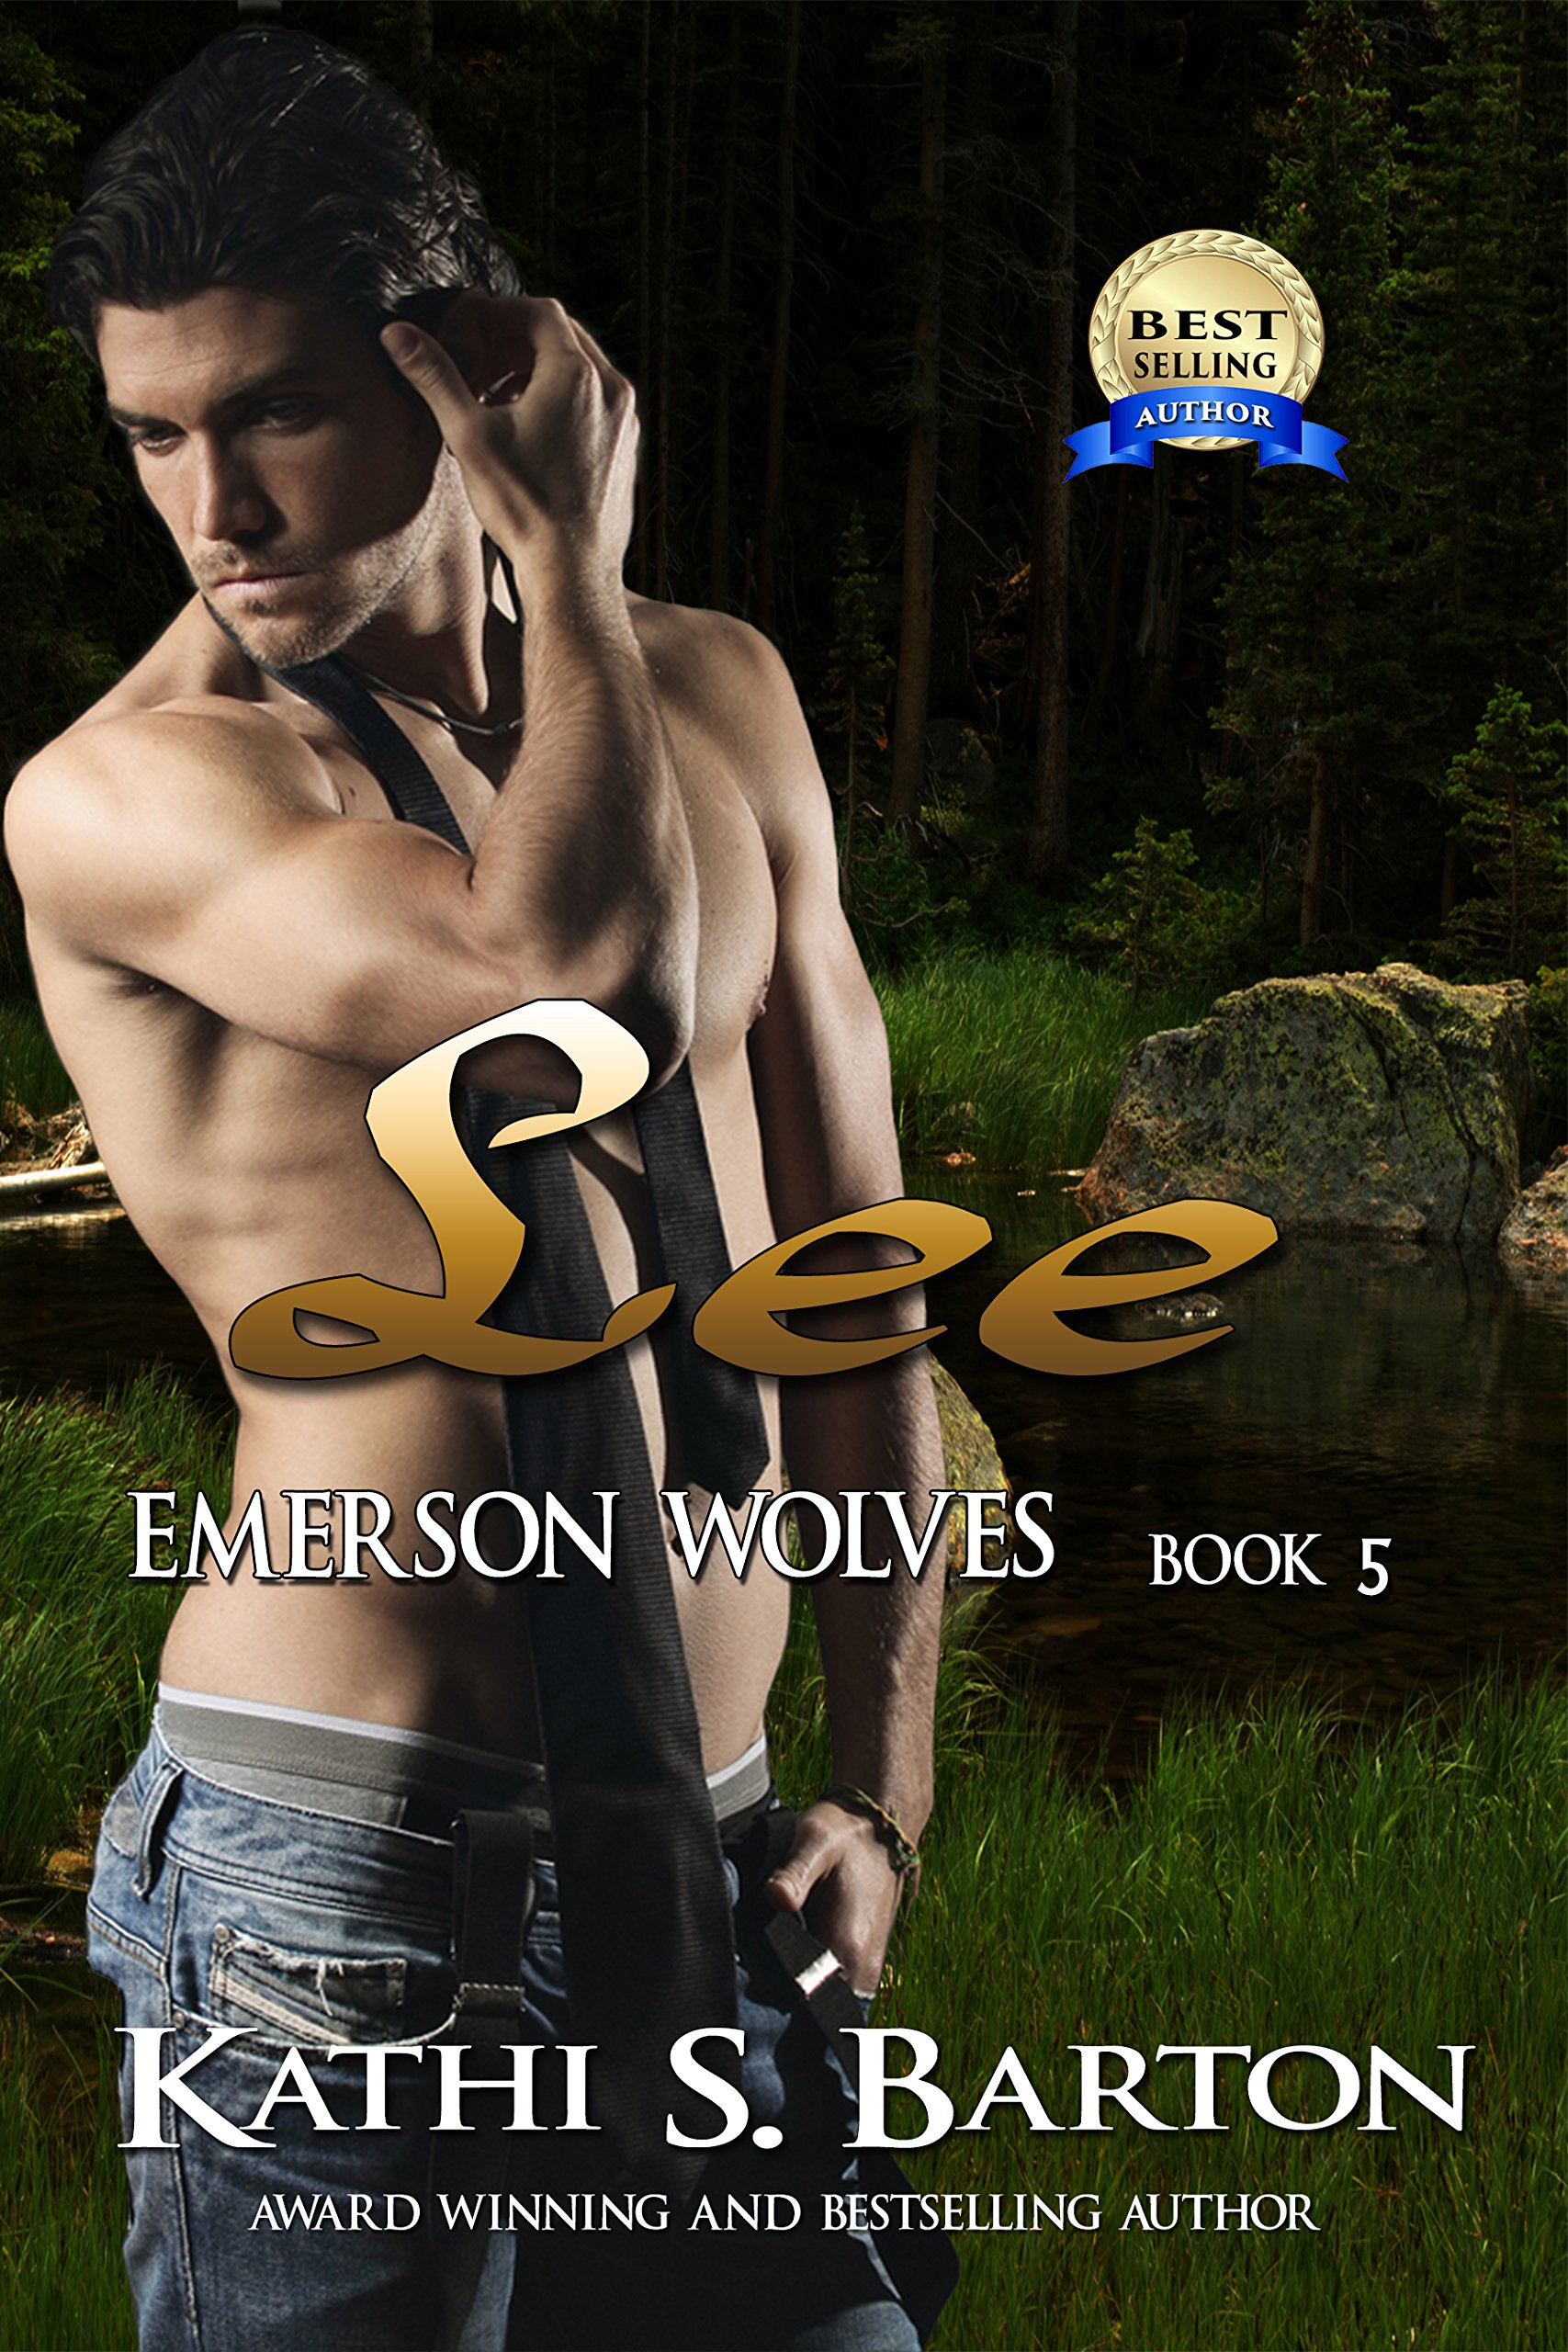 Lee: Emerson Wolves—Paranormal Erotic Wolf Shifter Romance